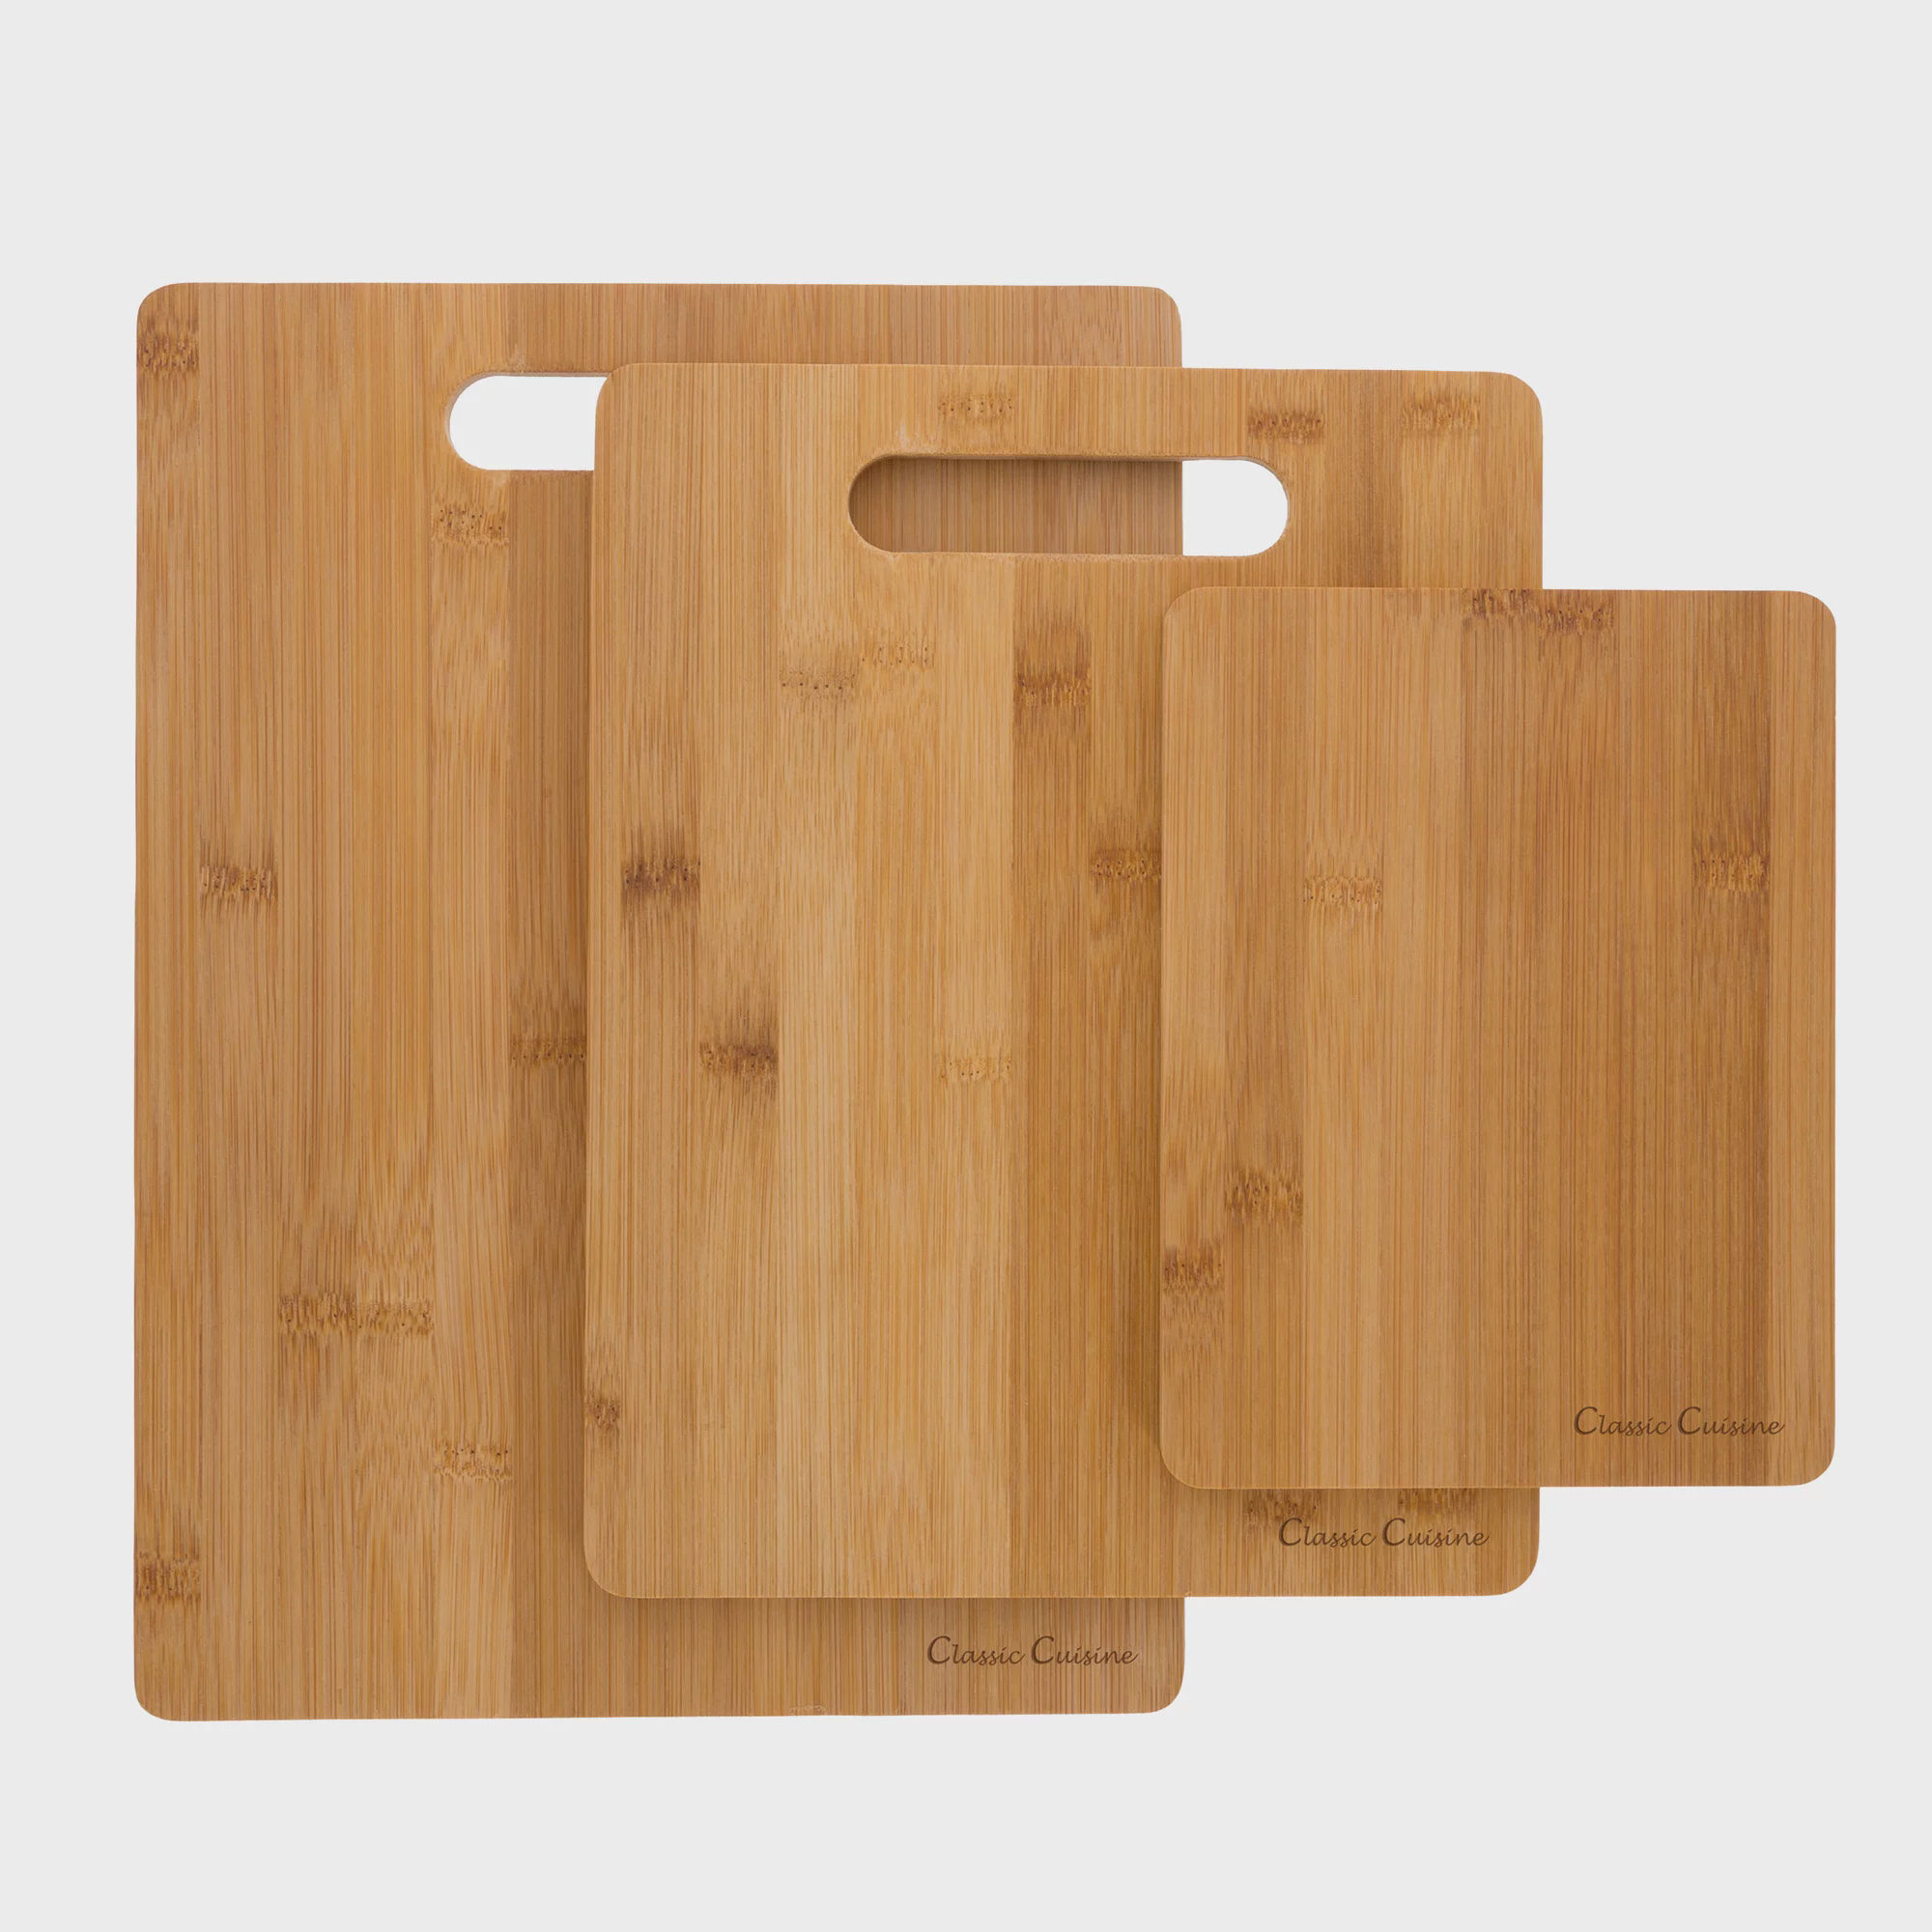 3 Piece Bamboo Cutting Board Set, Food Prep by Classic Cuisine by Trademark Global LLC